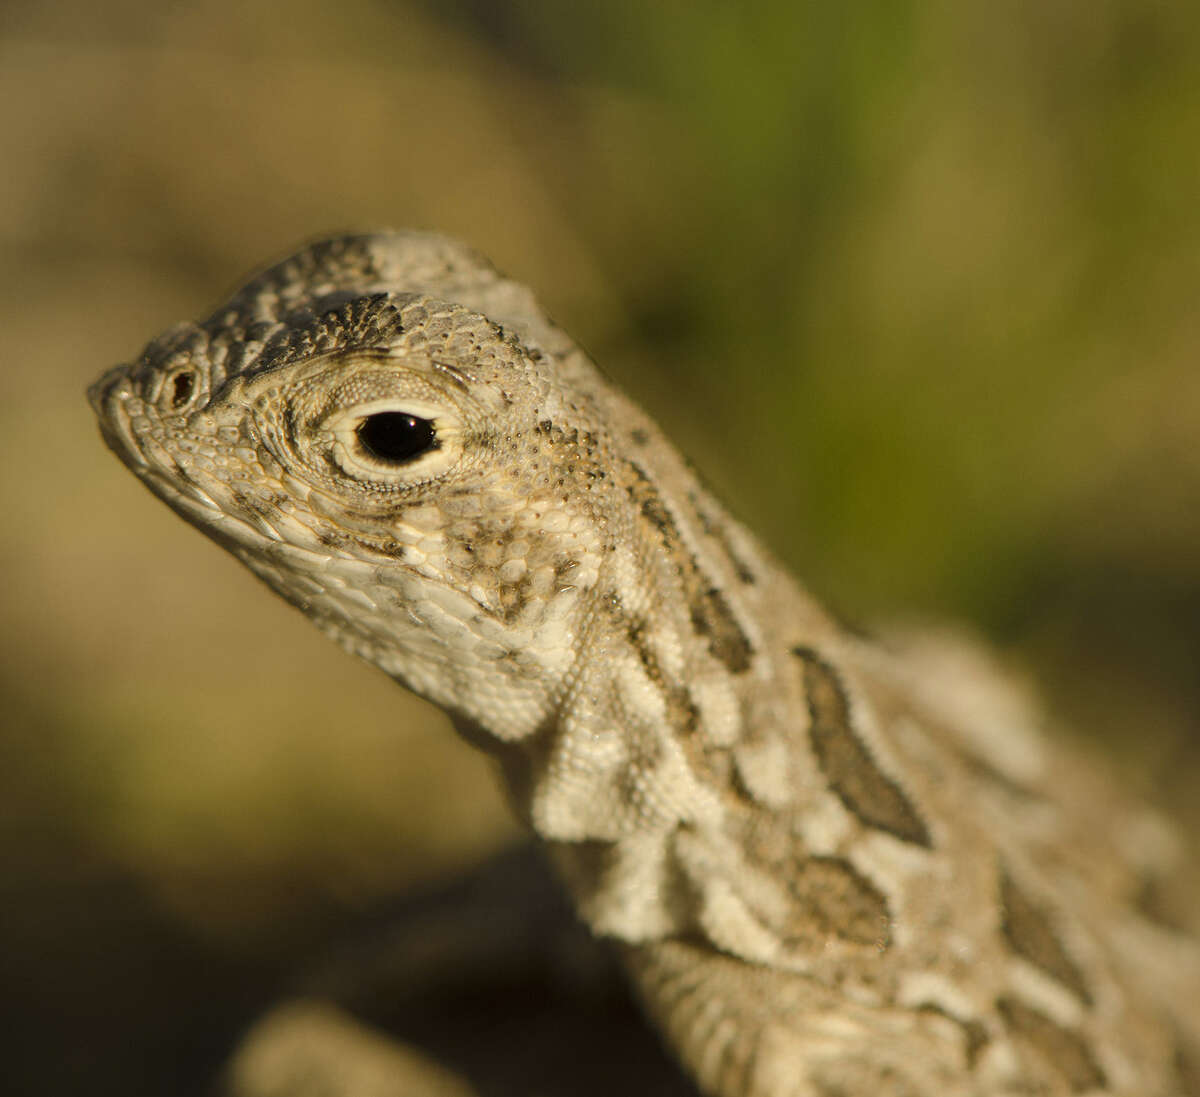 U.S. Fish and Wildlife says the spot-tailed earless lizard may warrant a listing as threatened or endangered.